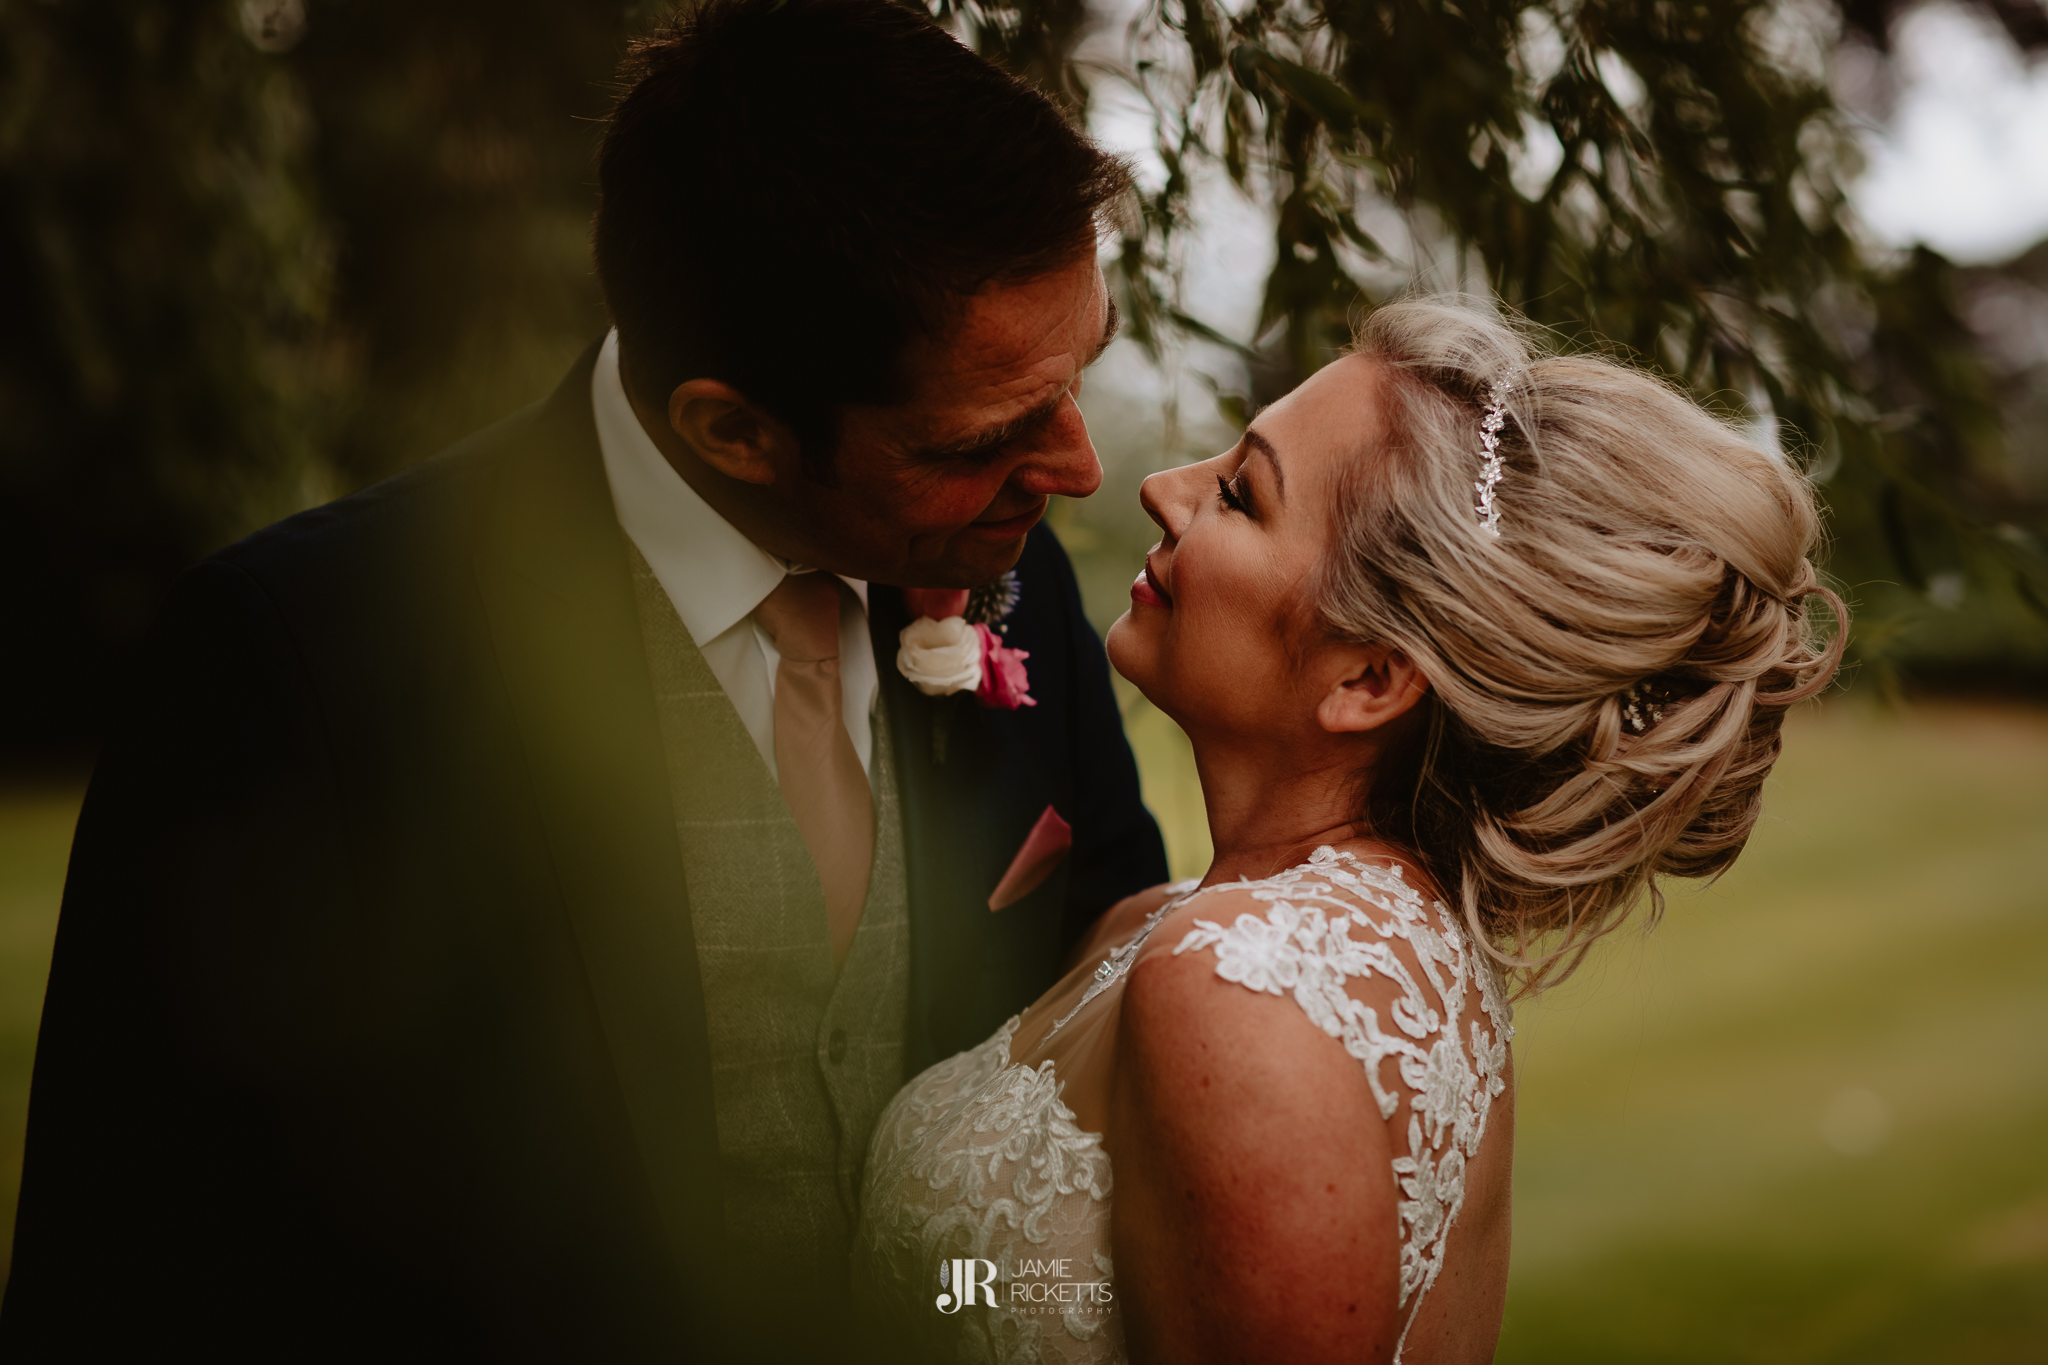 Wroxeter-Hotel-Wedding-Photography-In-Shropshire-By-Shropshire-Wedding-Photographer-Jamie-Ricketts-124.JPG